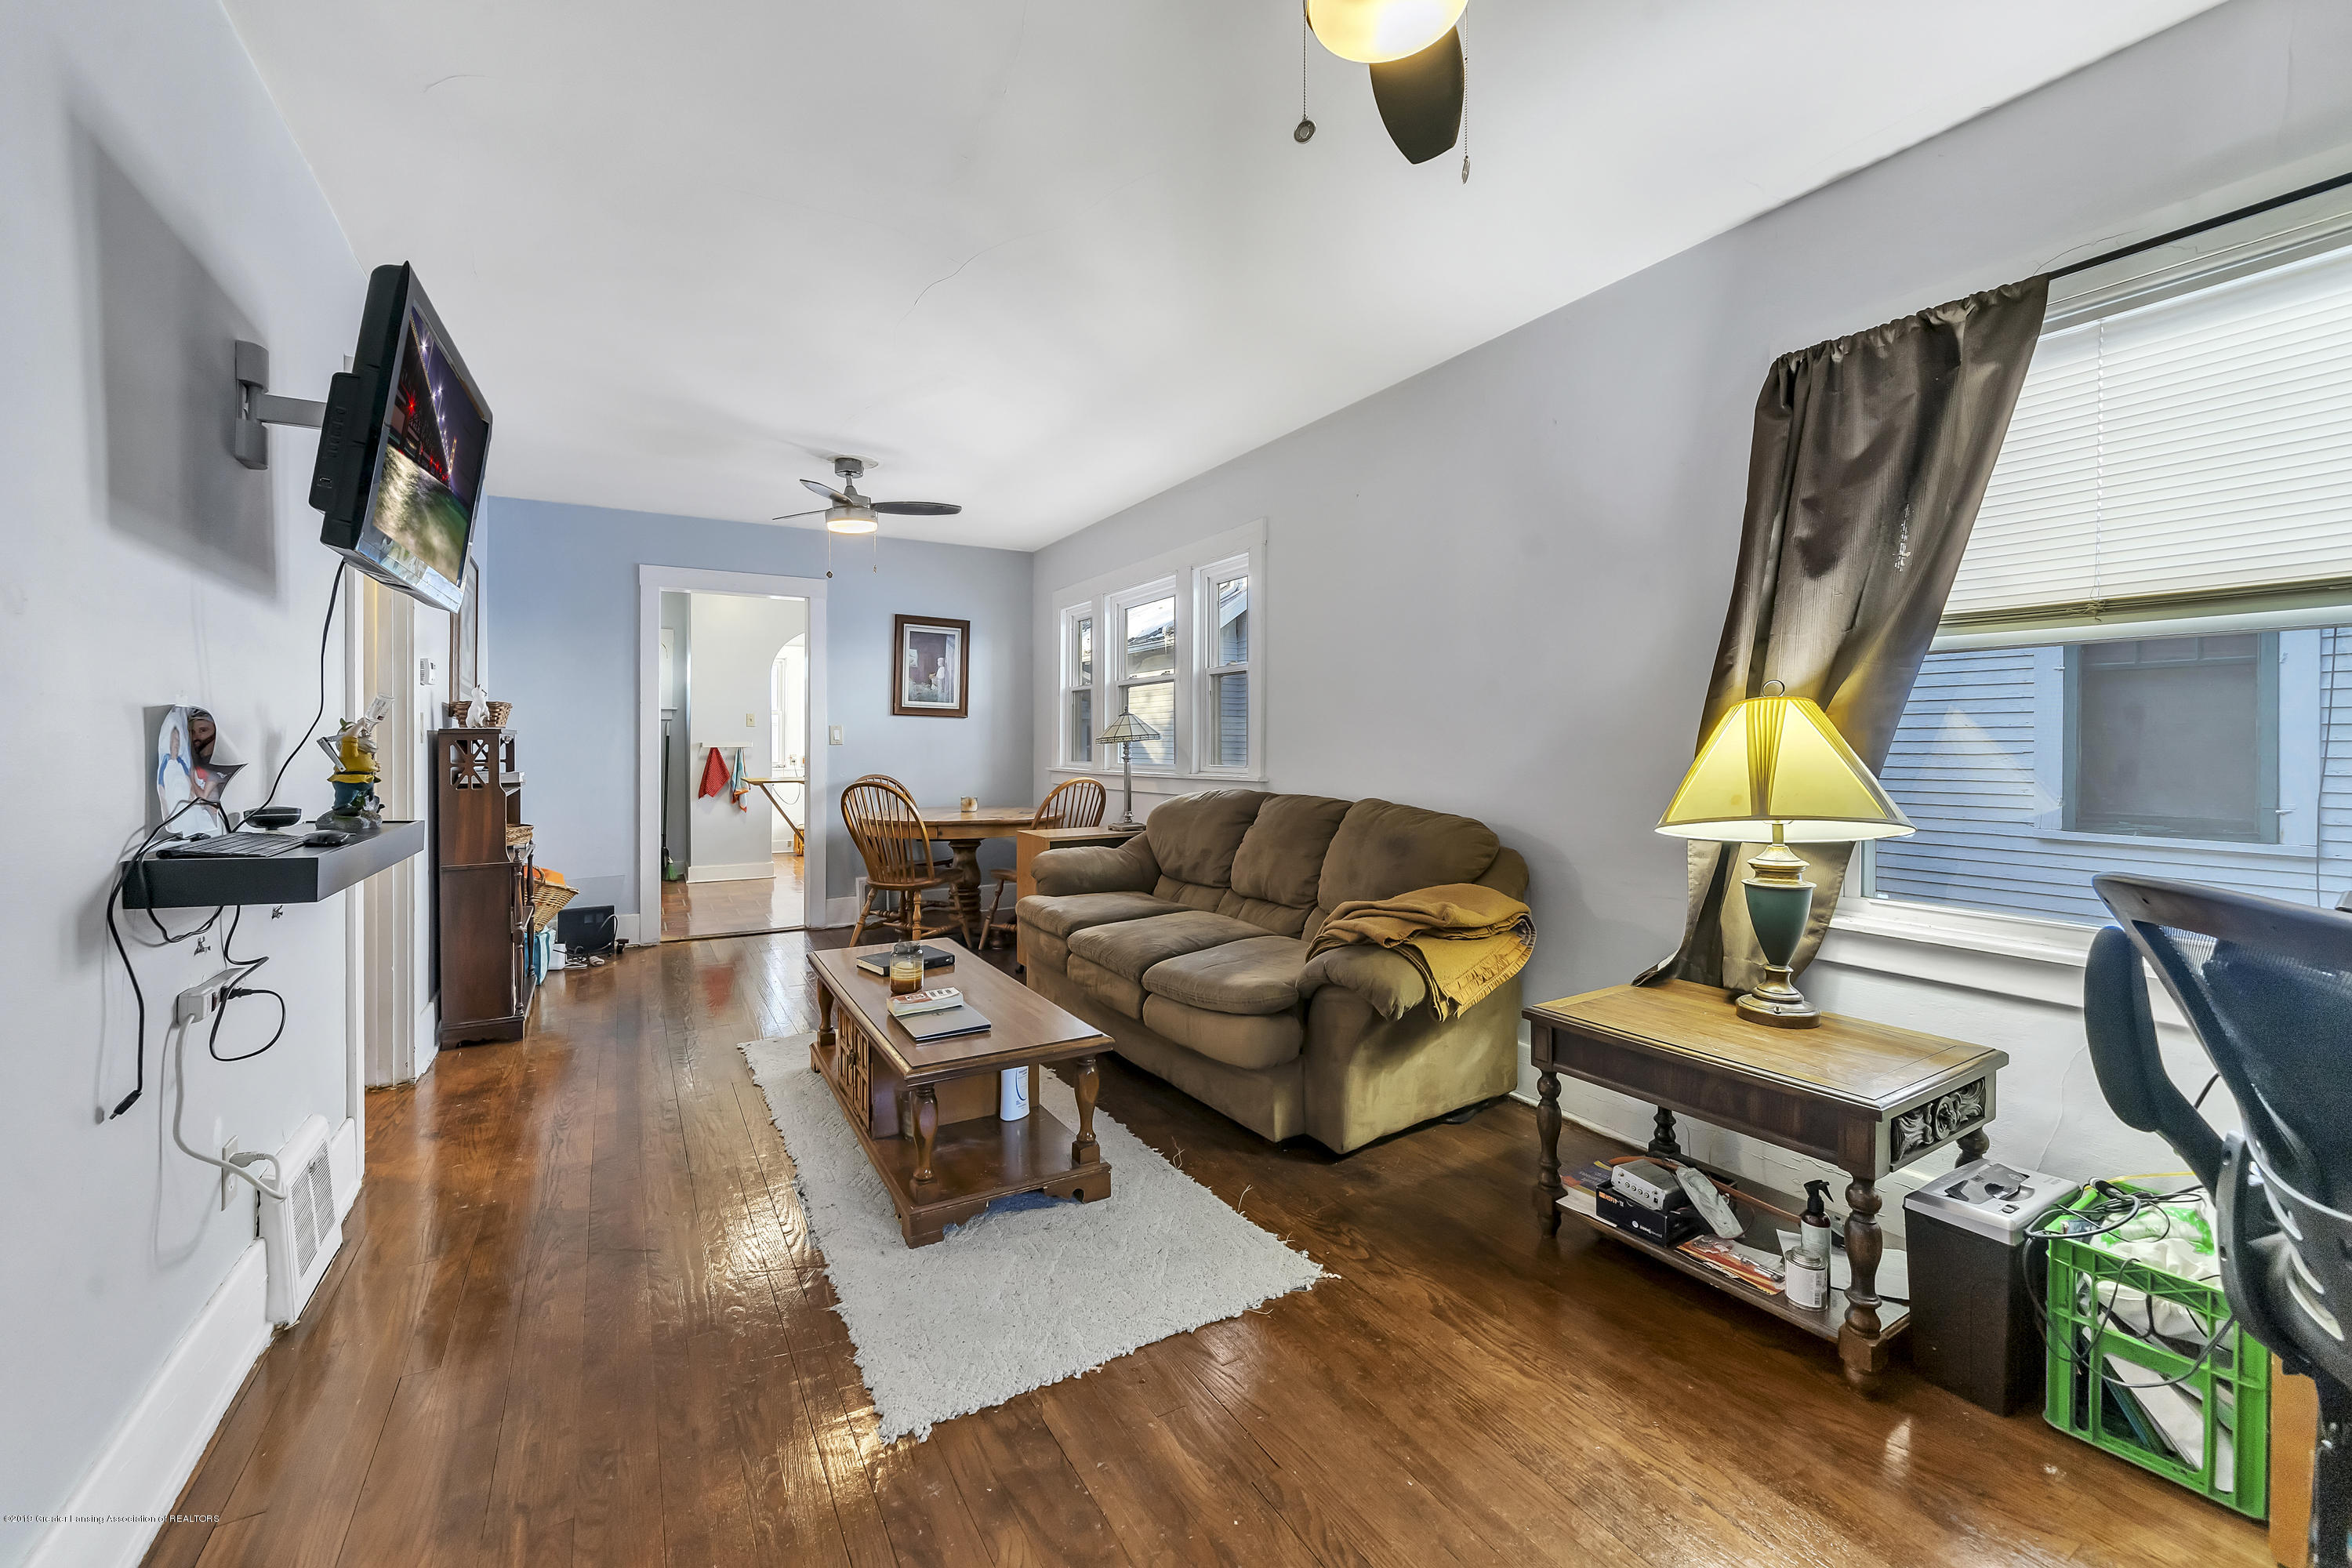 1004 S Holmes St - 1004-S-Holmes-st-WindowStill-Real-Estate - 9